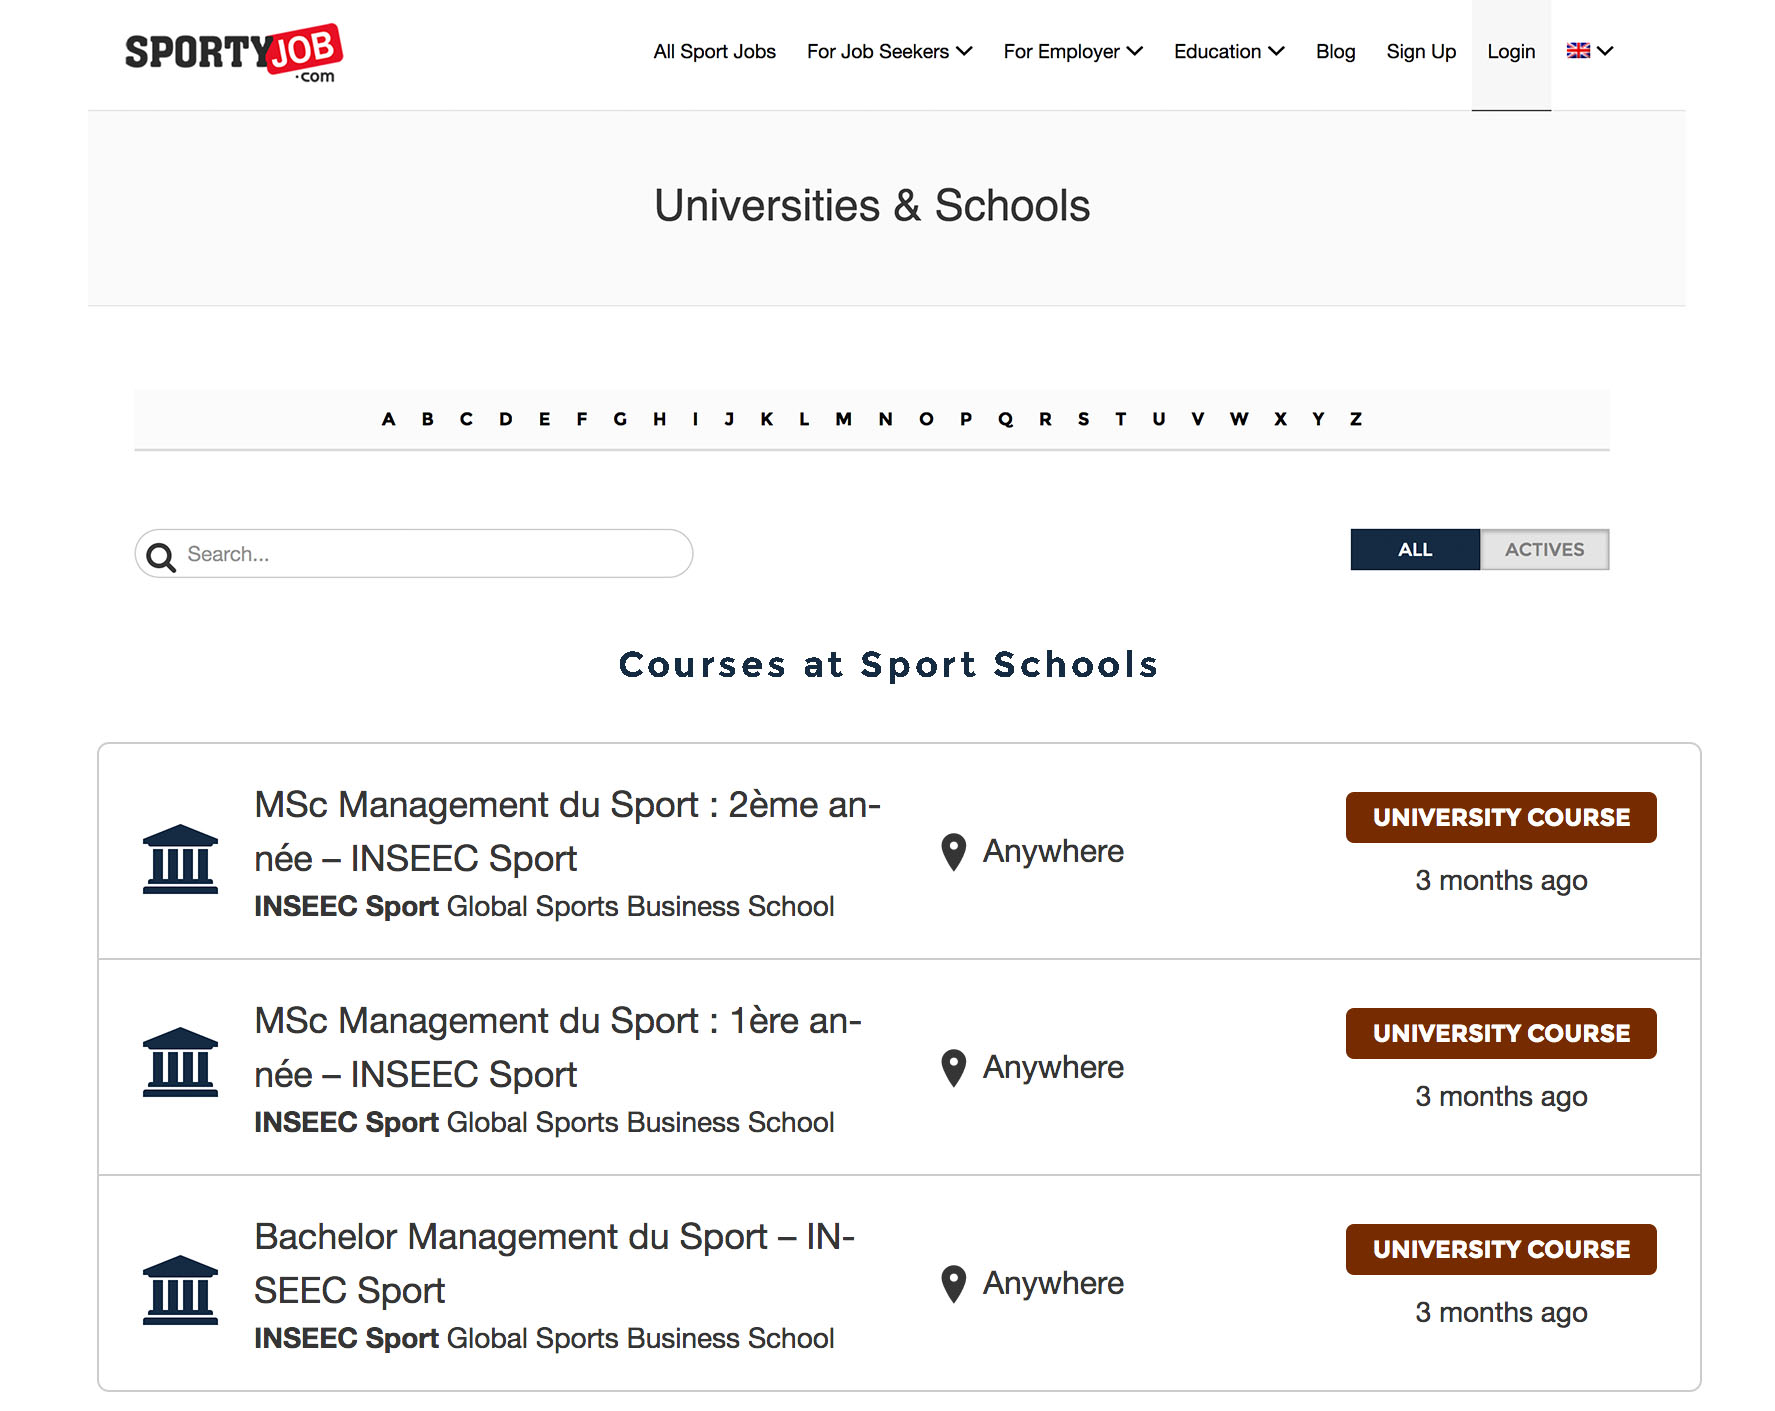 List your school & your sport related courses